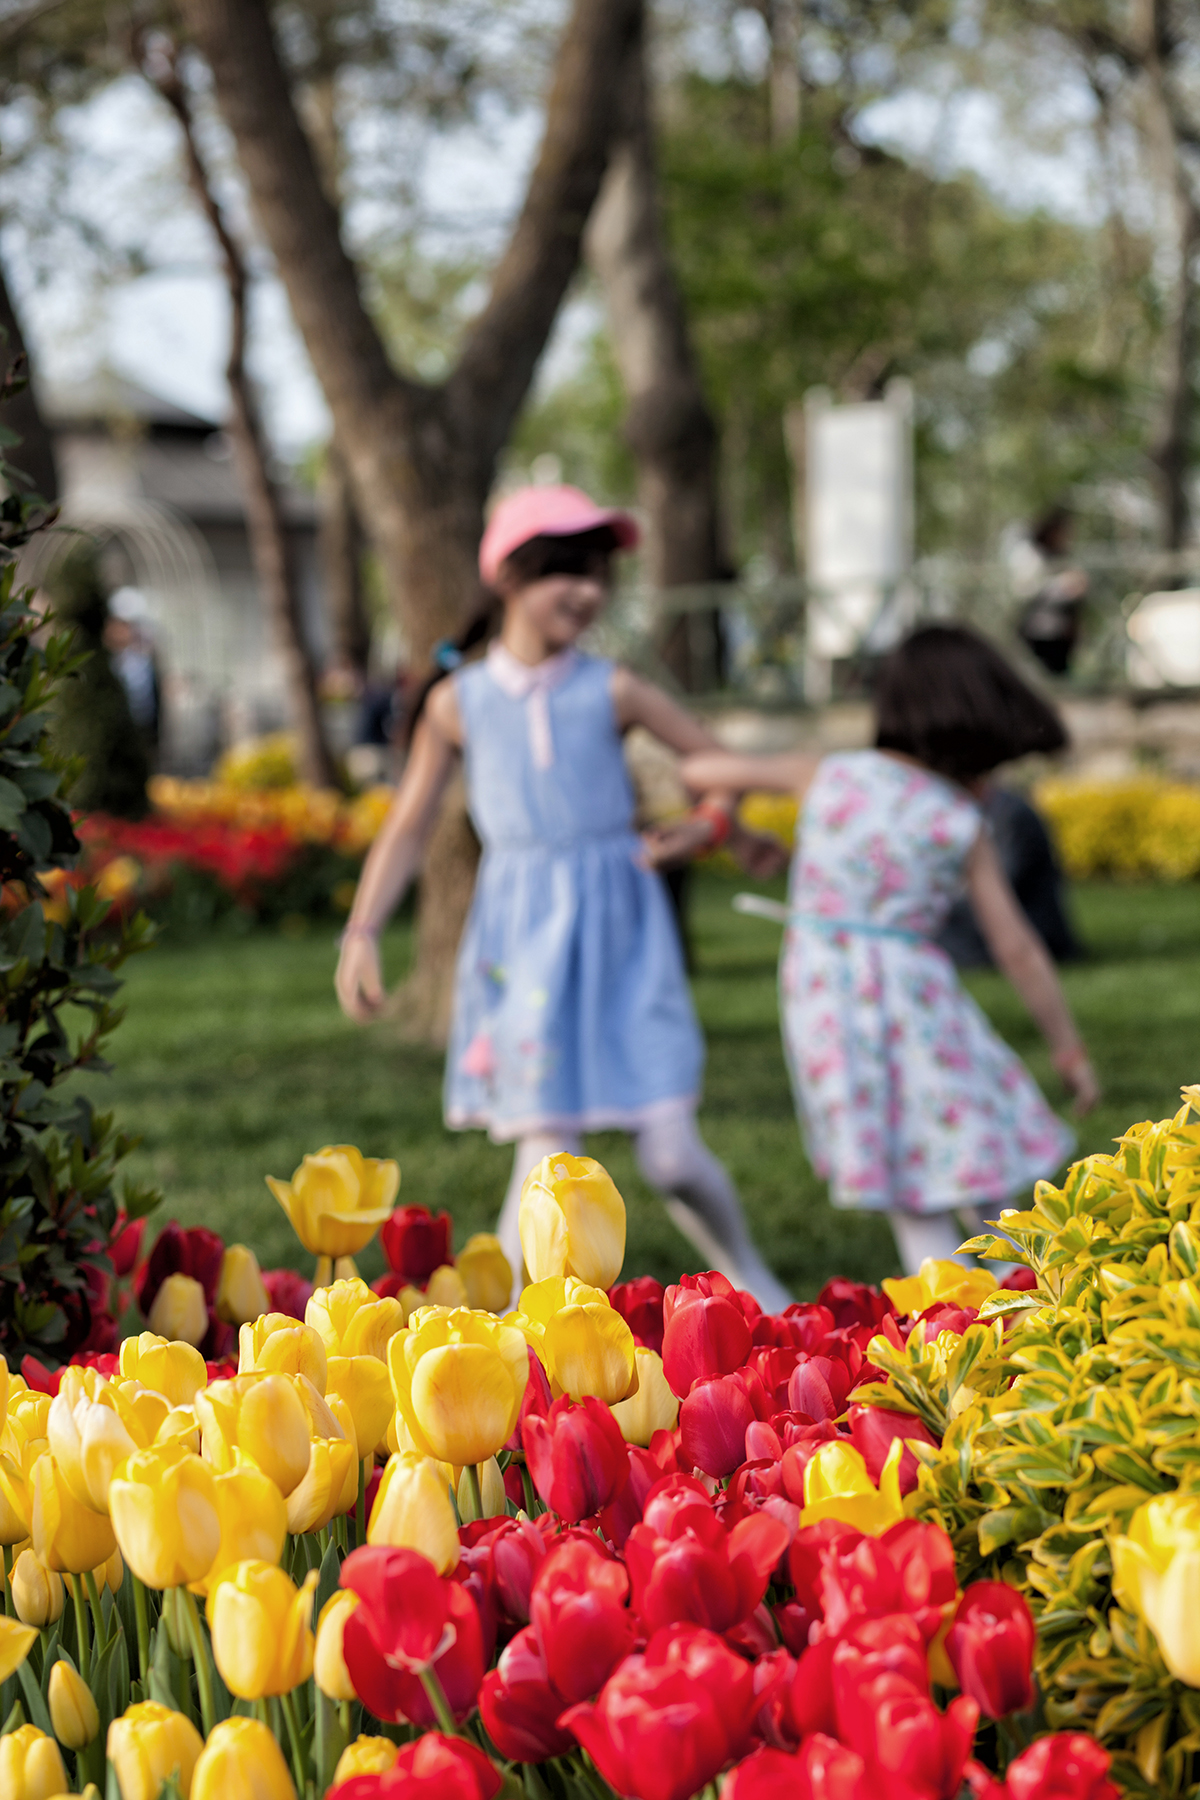 #101 —Çamlıca - 